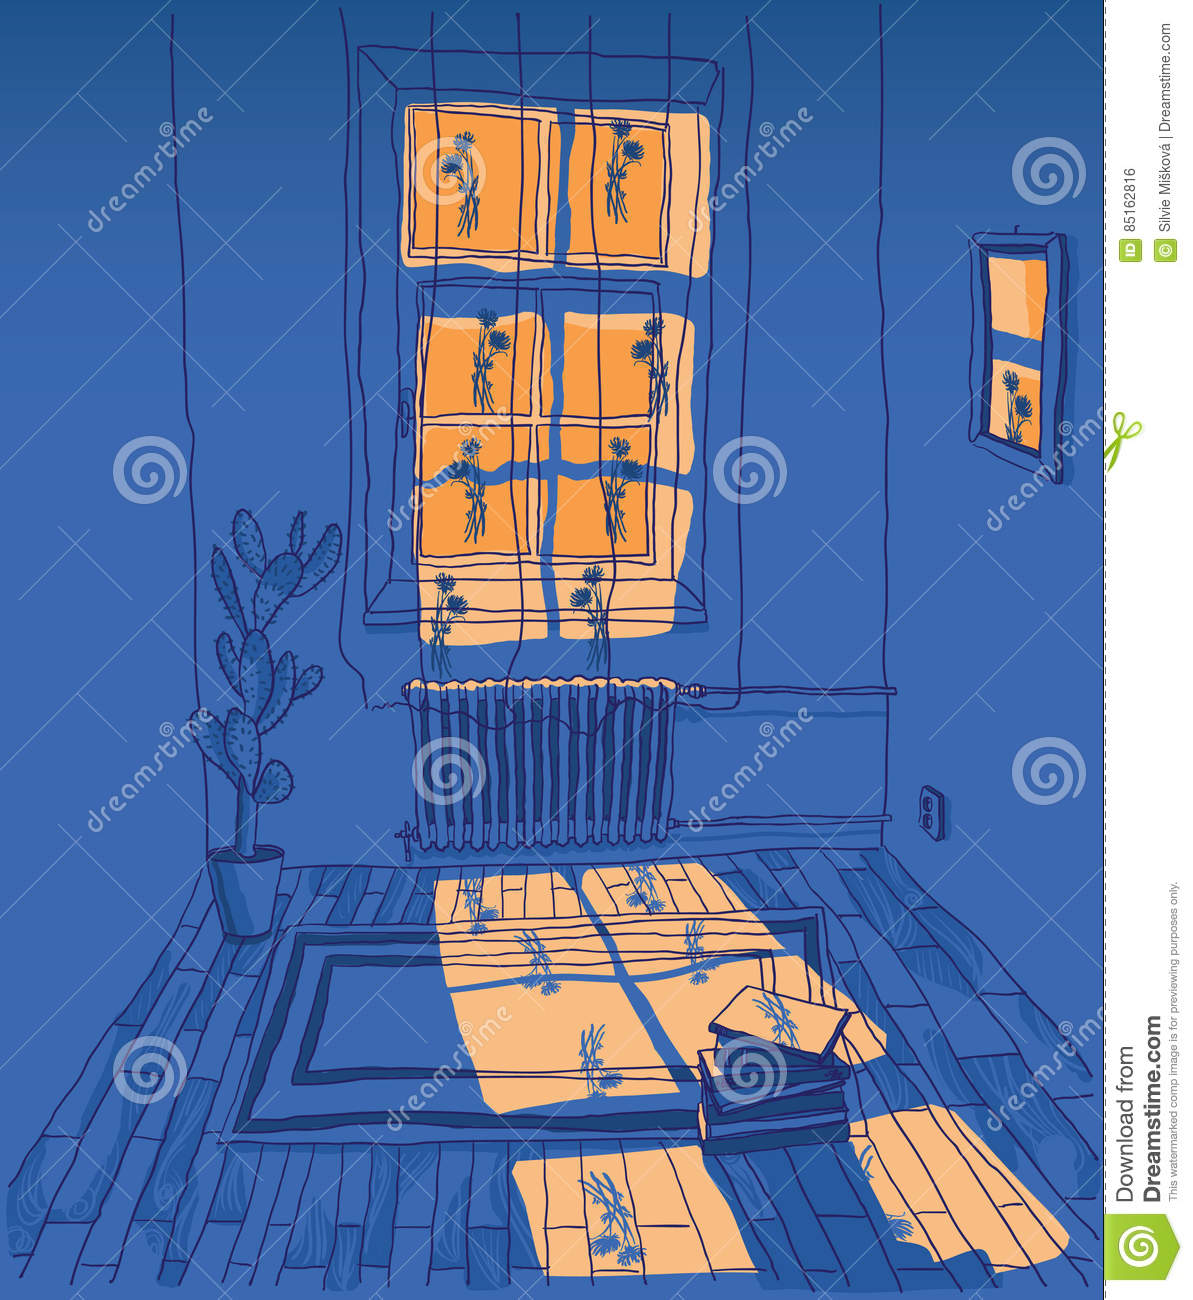 Room With Outside Lighting Stock Vector. Illustration Of